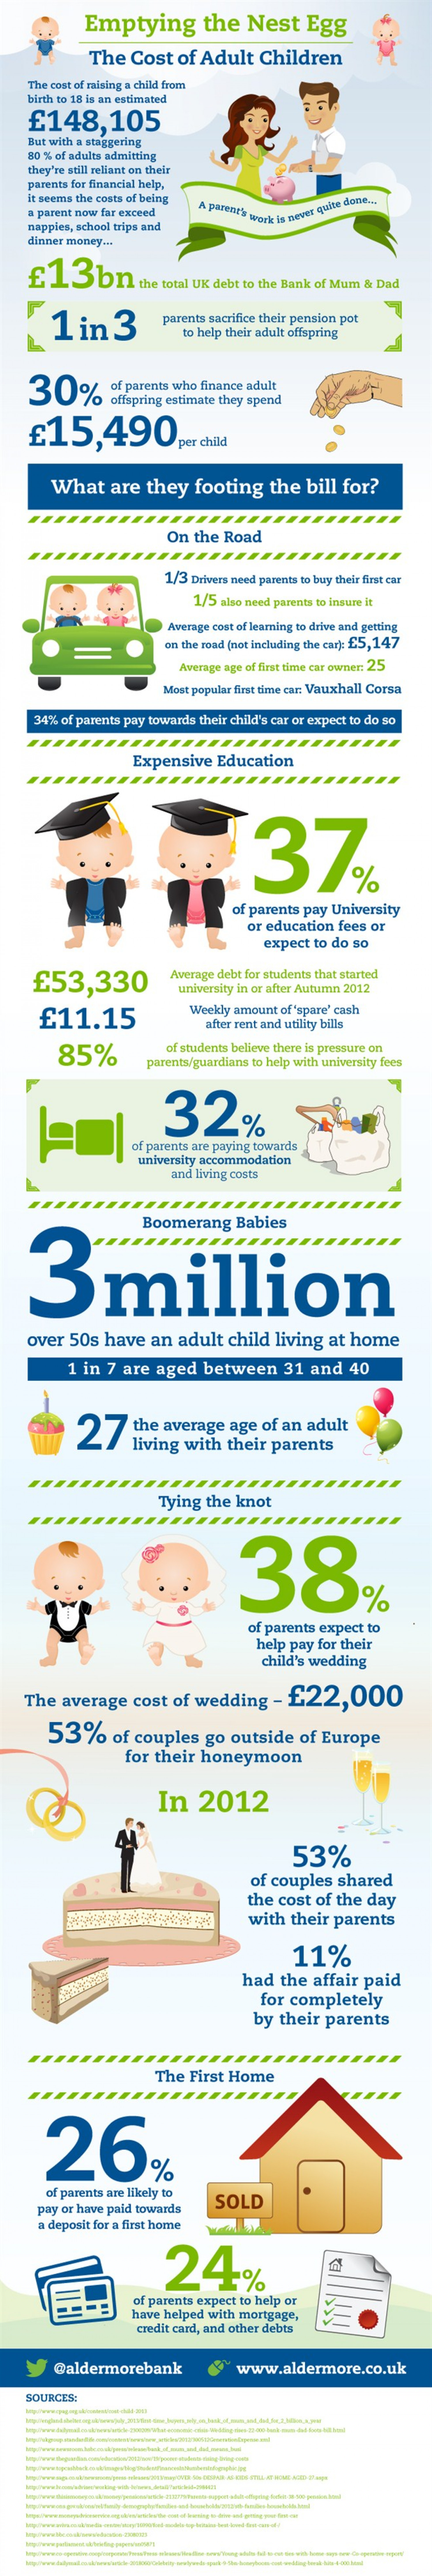 The Rising Cost Of Adult Children Infographic